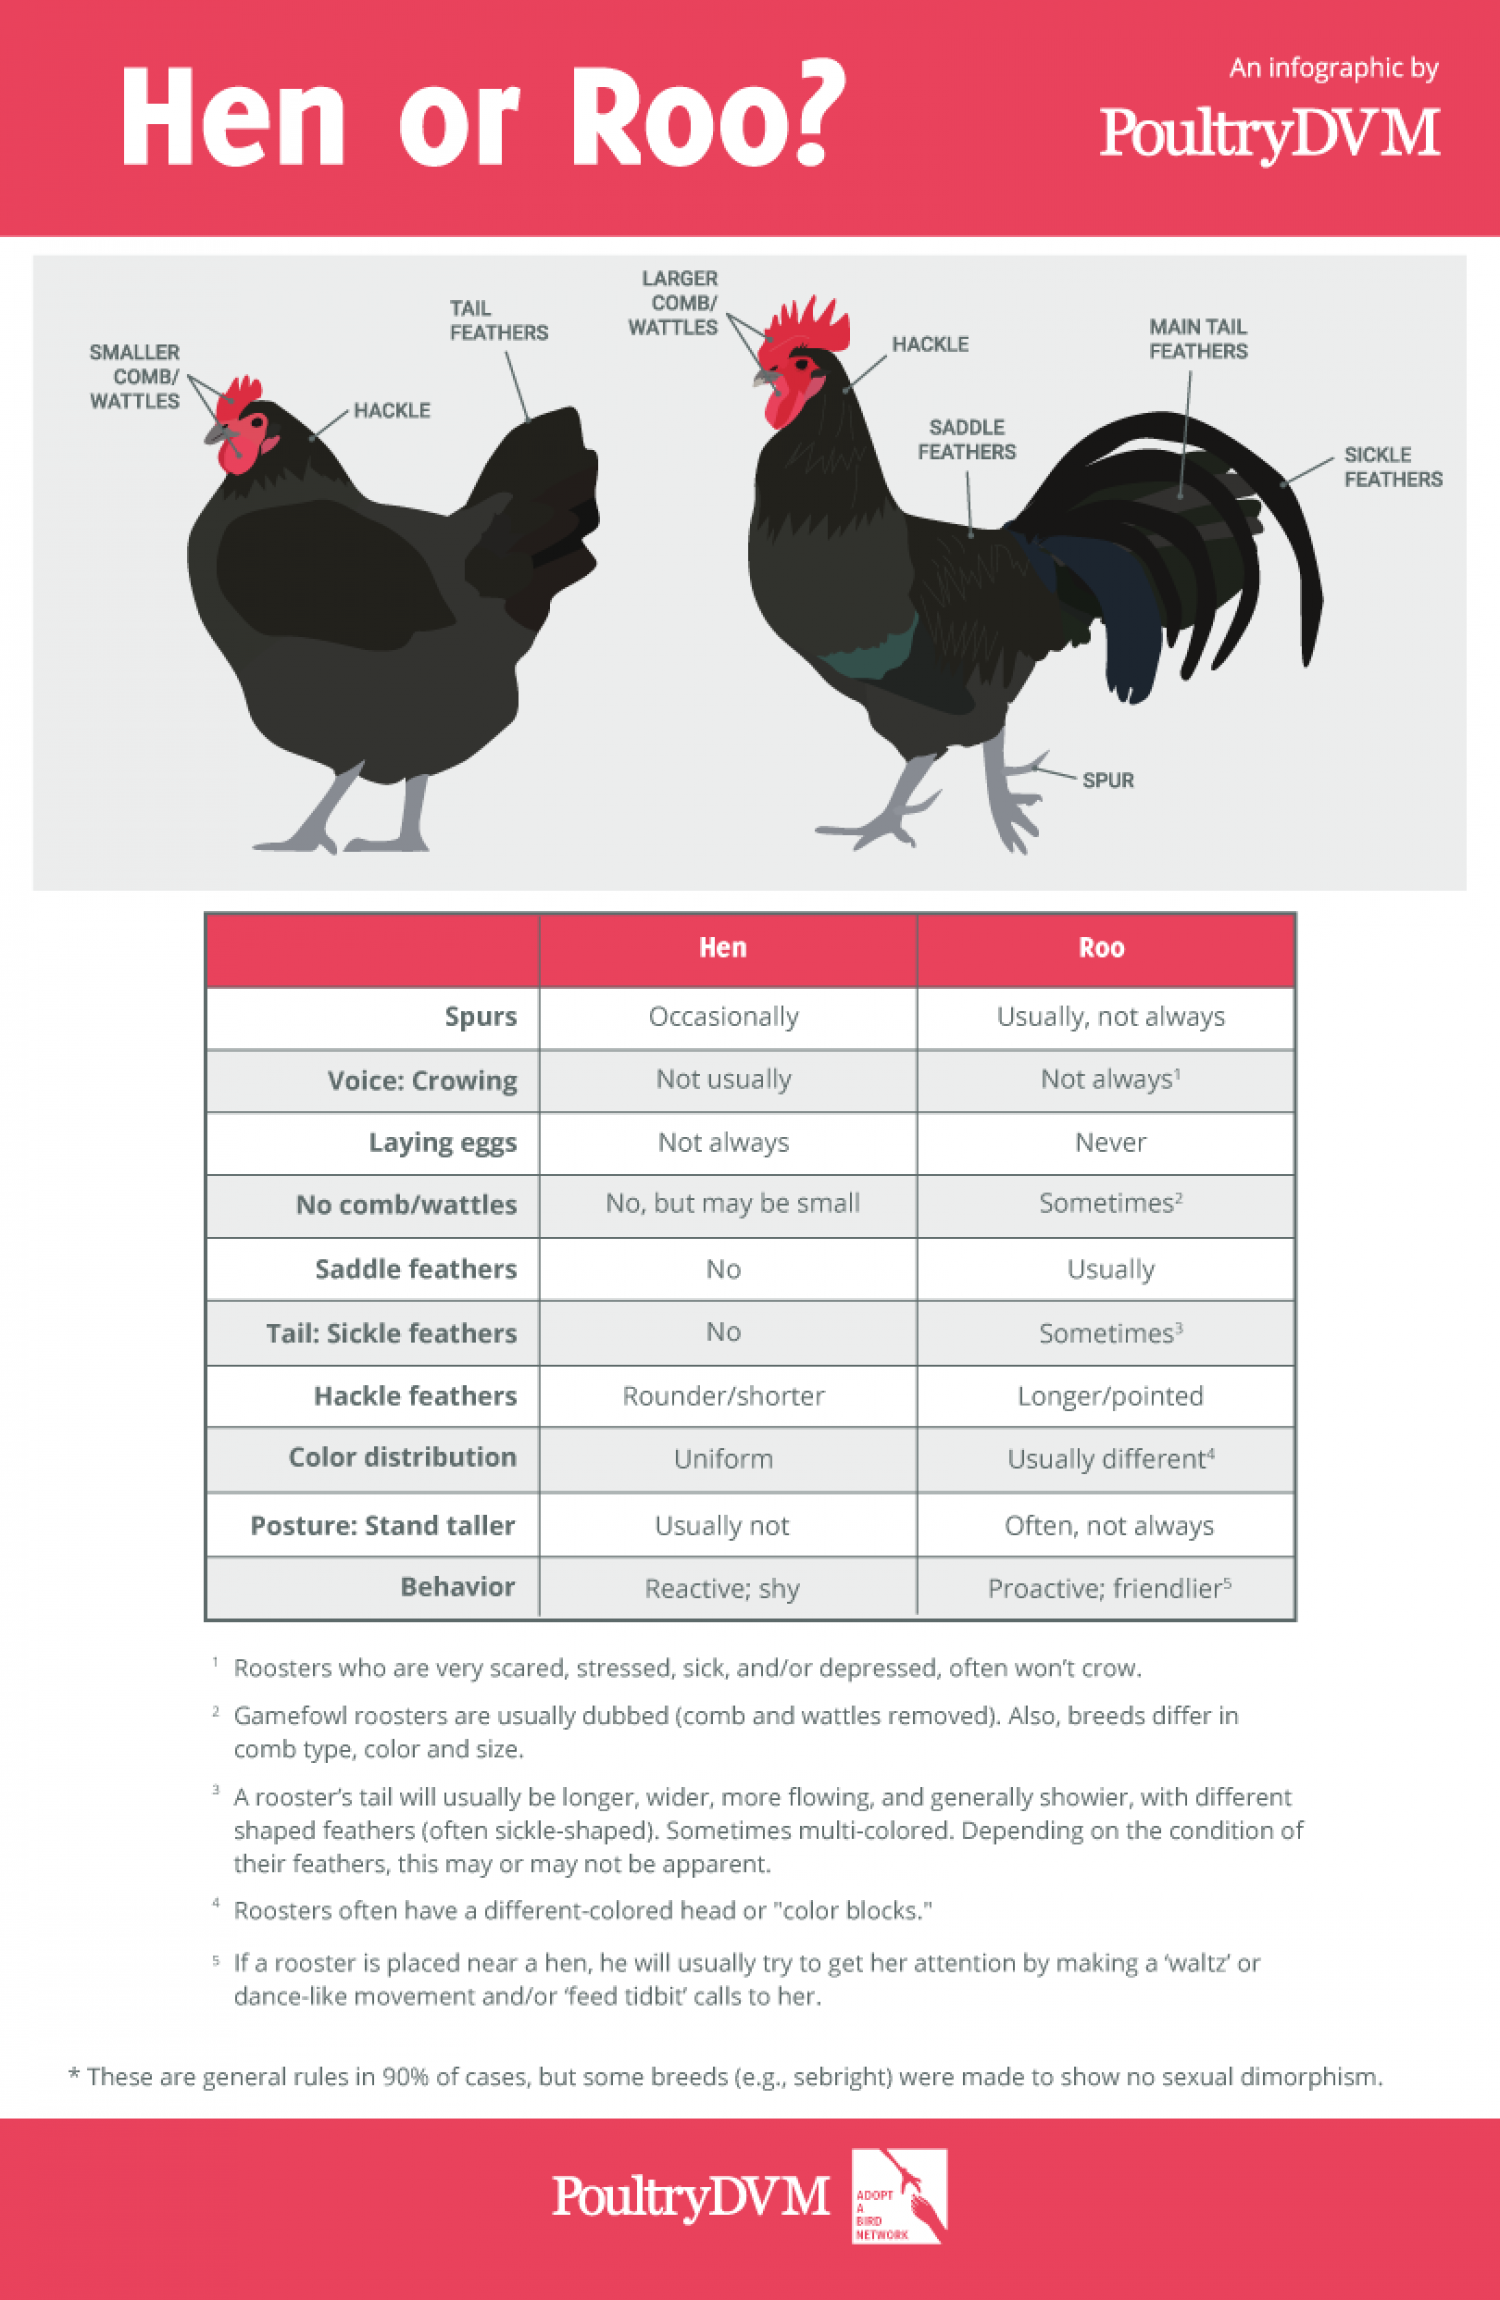 Hen or Roo? Infographic